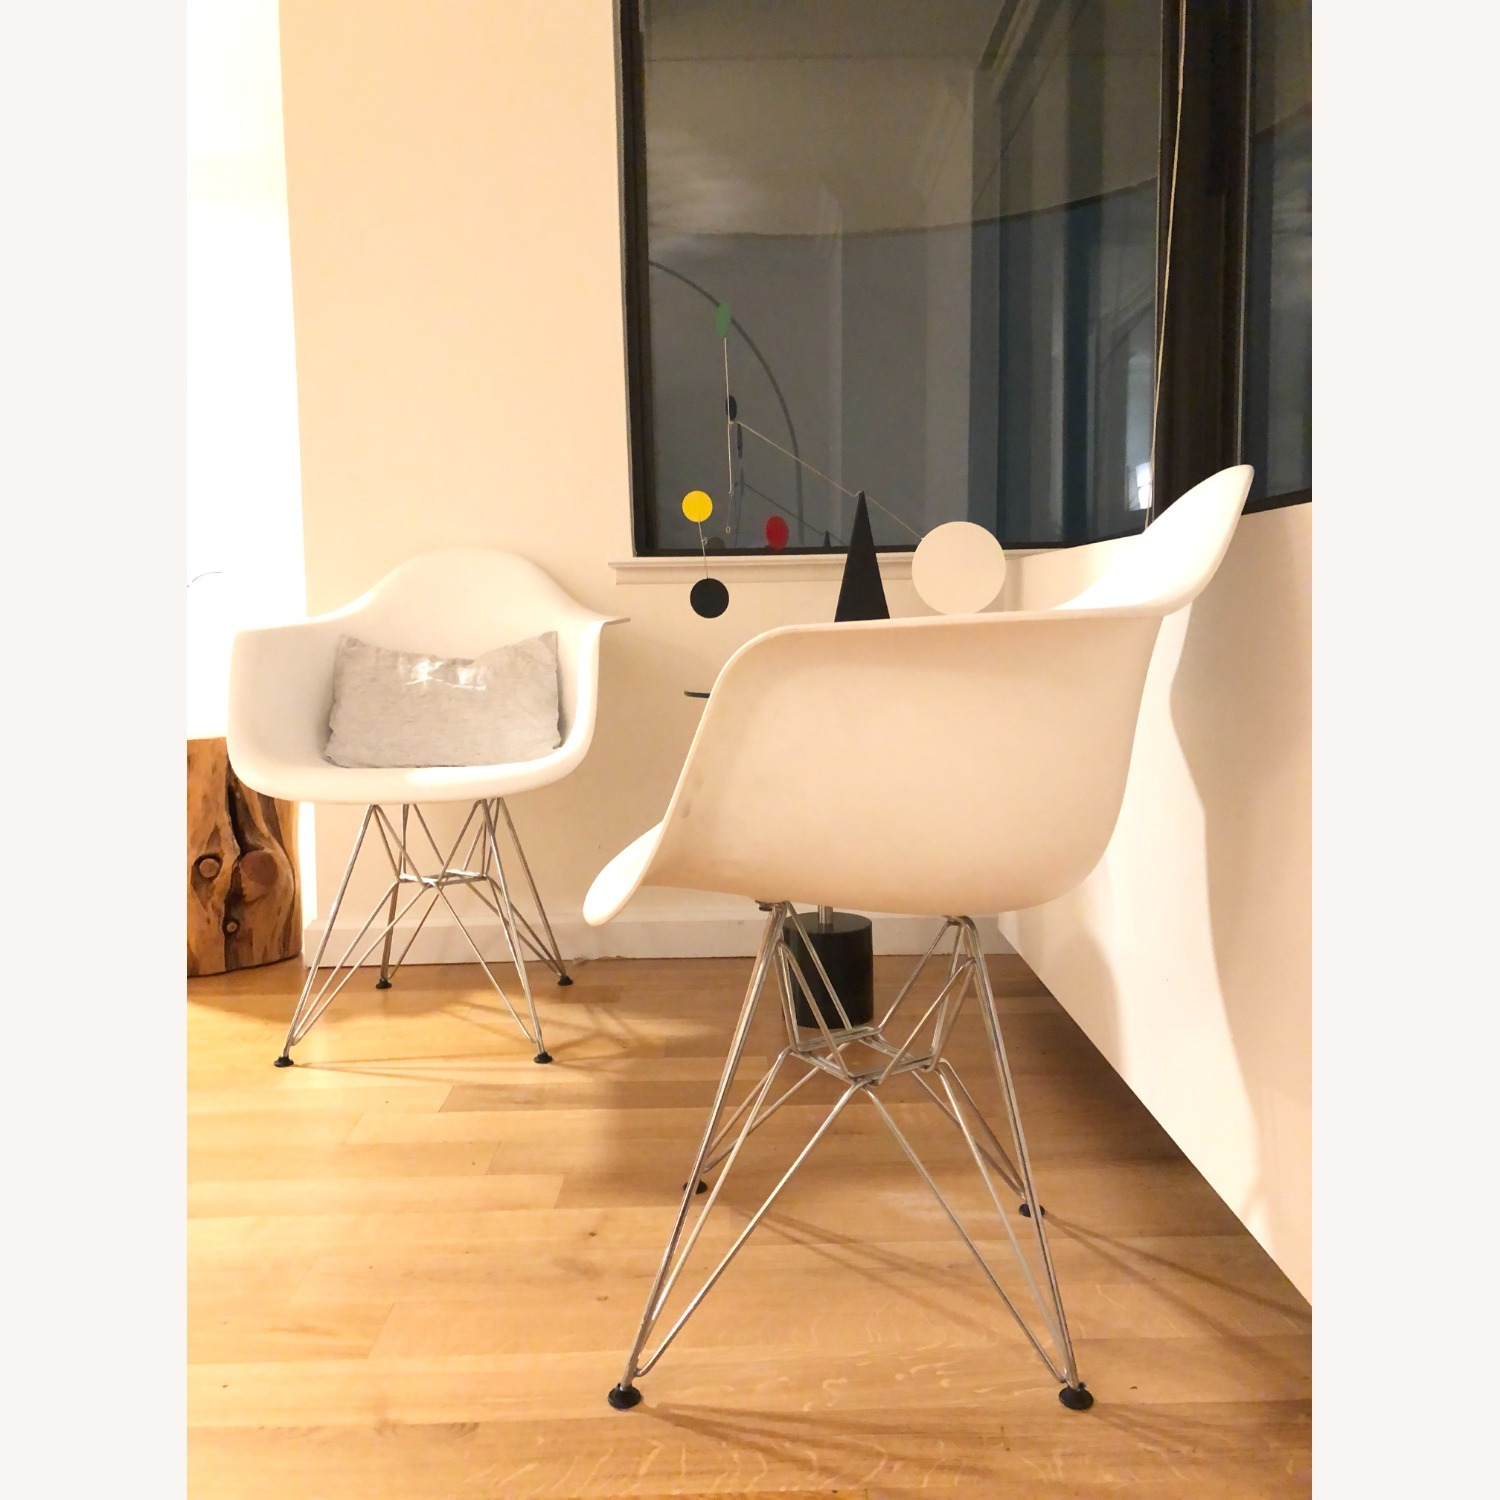 Sit Down New York Mid-Century Dining Chairs - image-4